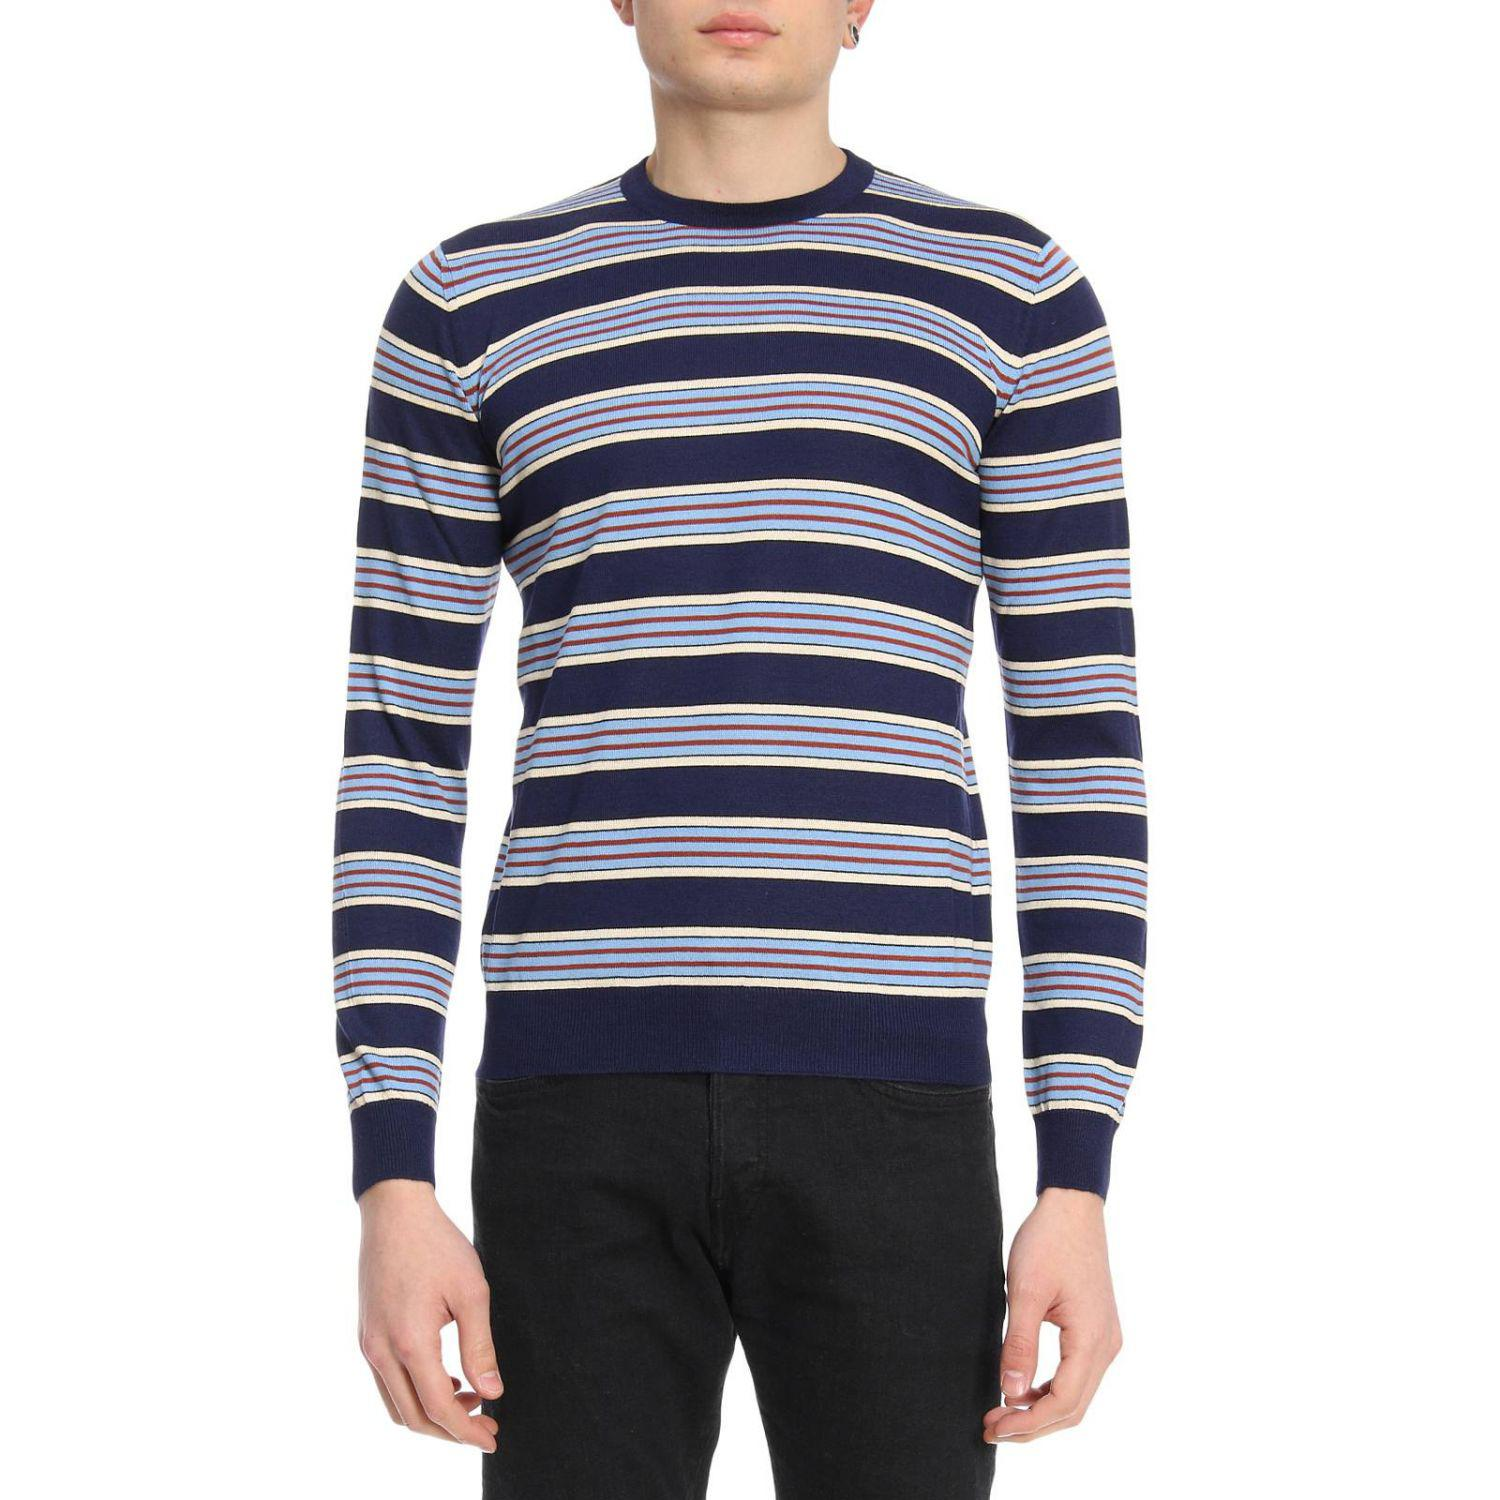 2449a5f64818 Lyst - Prada Sweater Men in Blue for Men